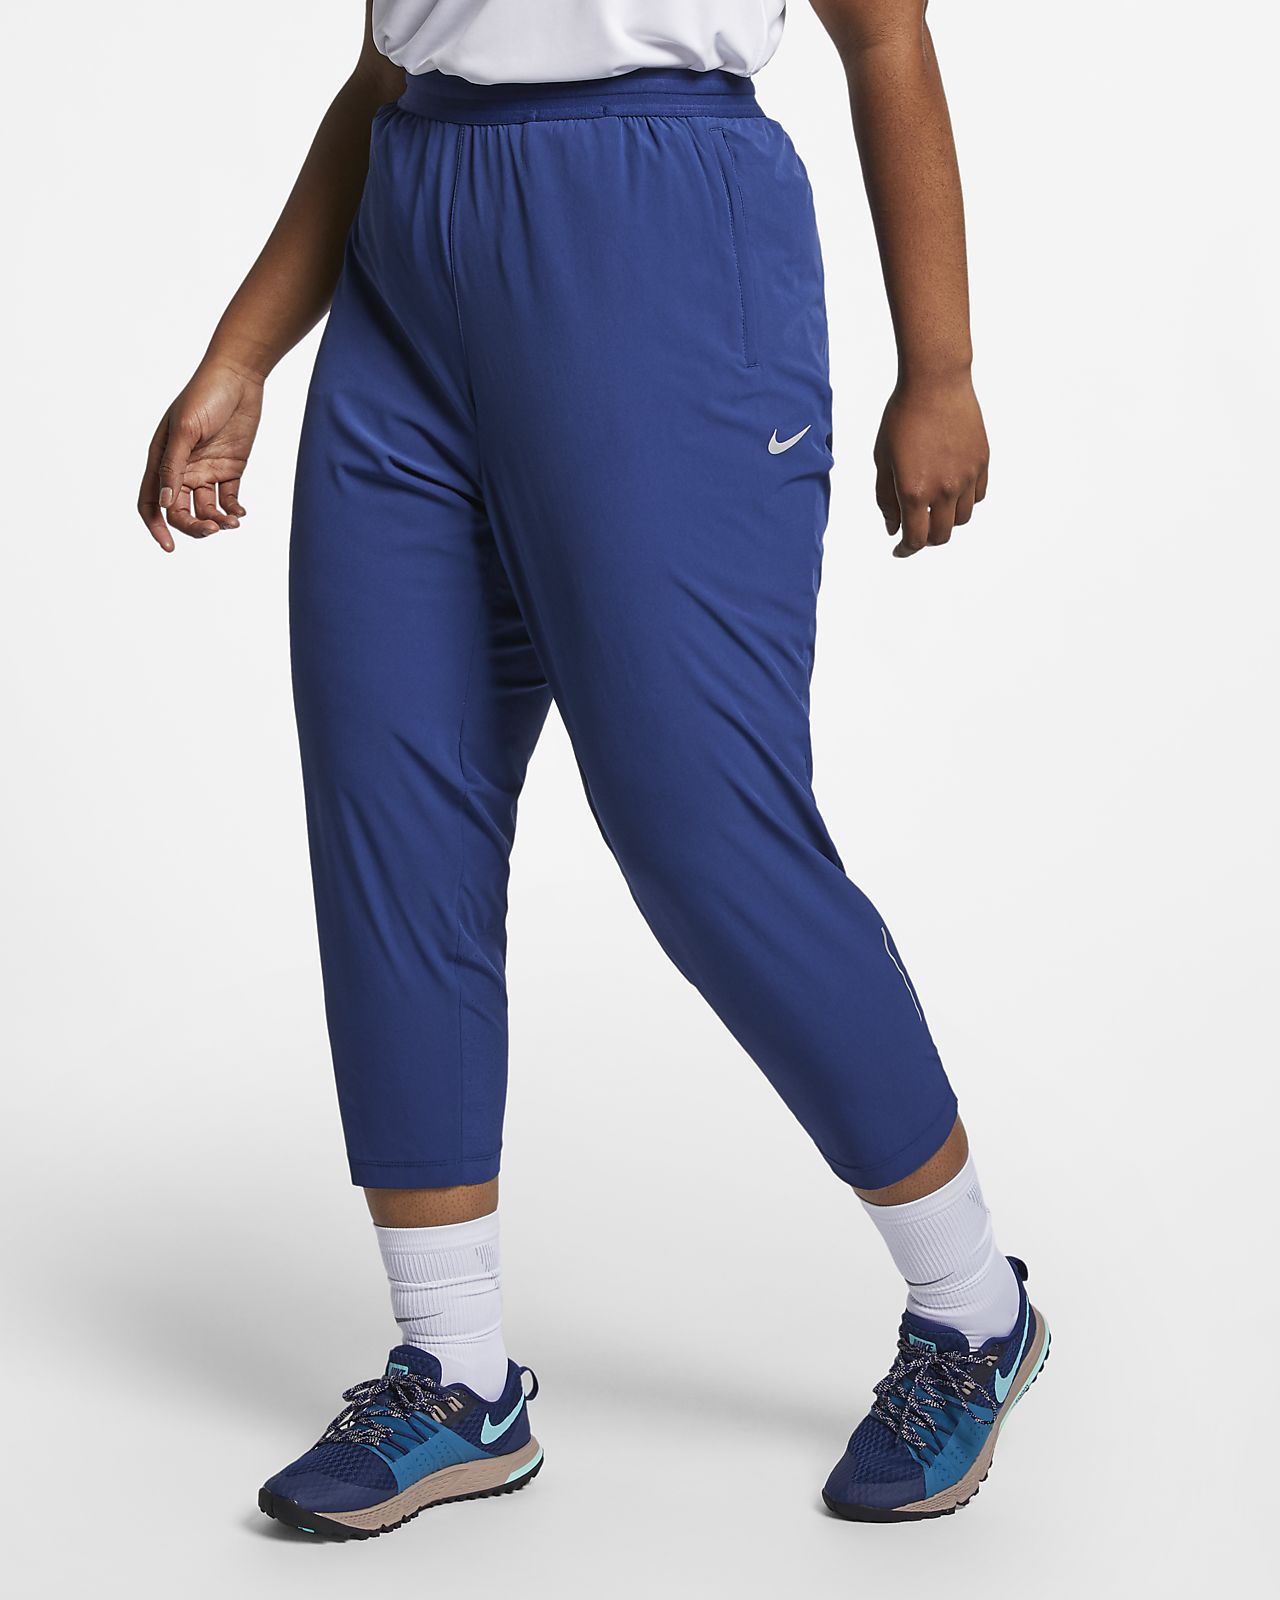 d5f44af27a3 Nike Essential Women s 7 8 Running Trousers (Plus Size). Nike.com GB